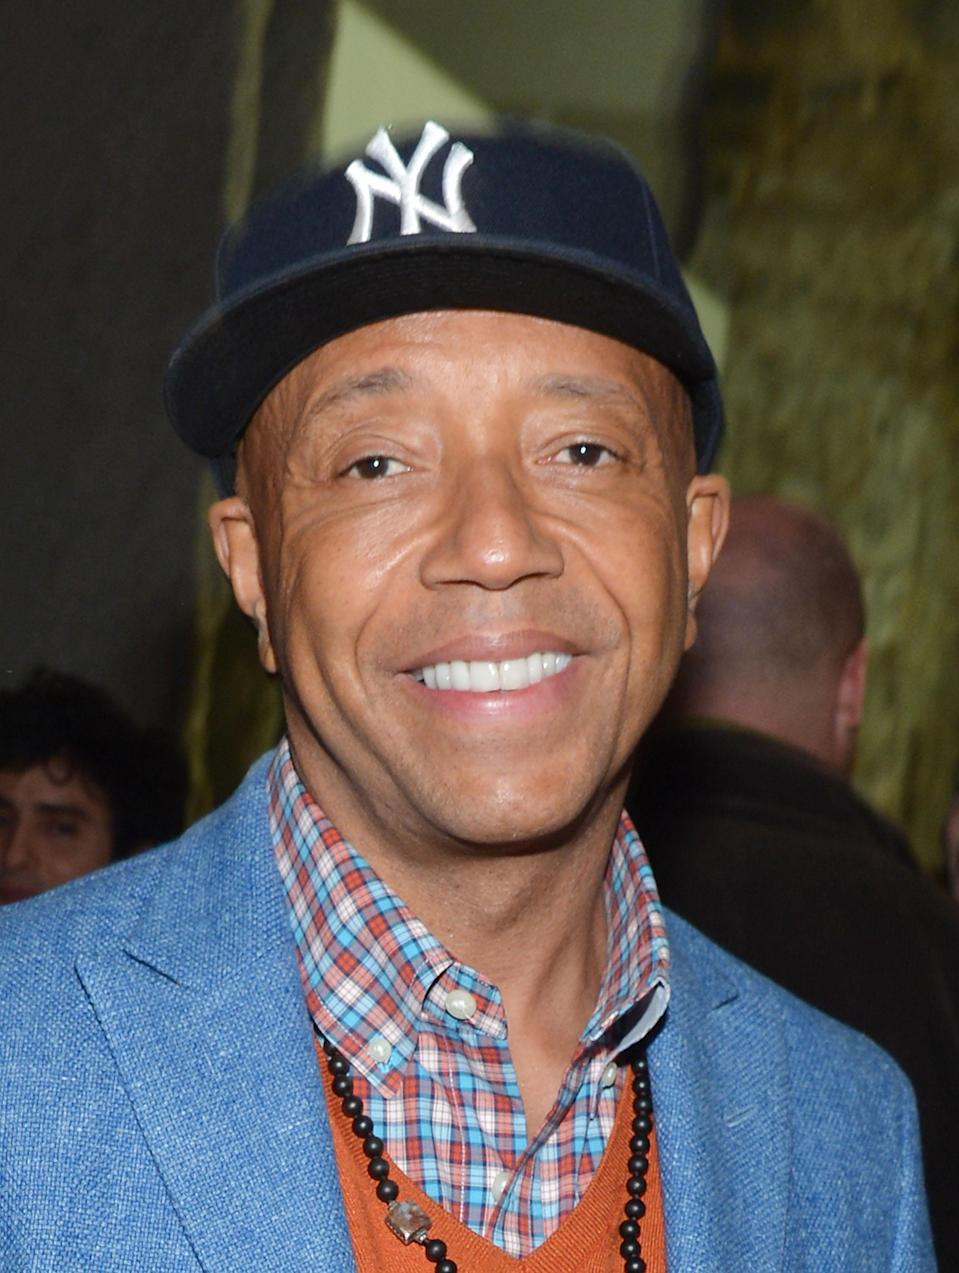 "<b>Russell Simmons:</b> ""praying for the people of Aurora, Colorado."" (Photo by Mike Coppola/Getty Images)"